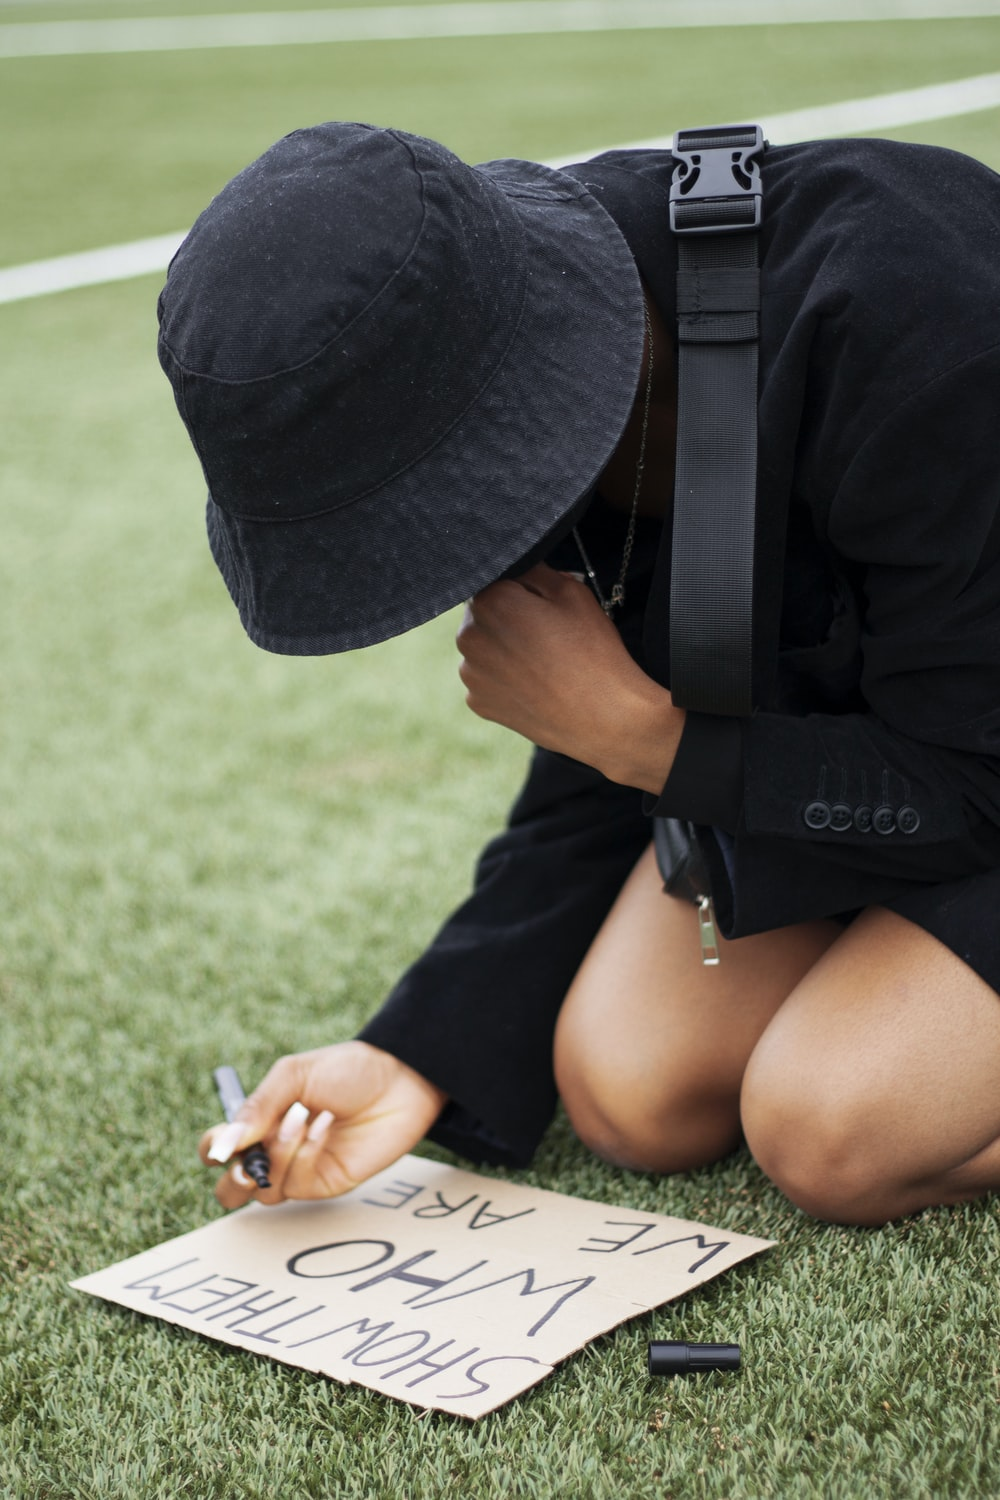 woman in black hat and black t-shirt sitting on green grass field during daytime